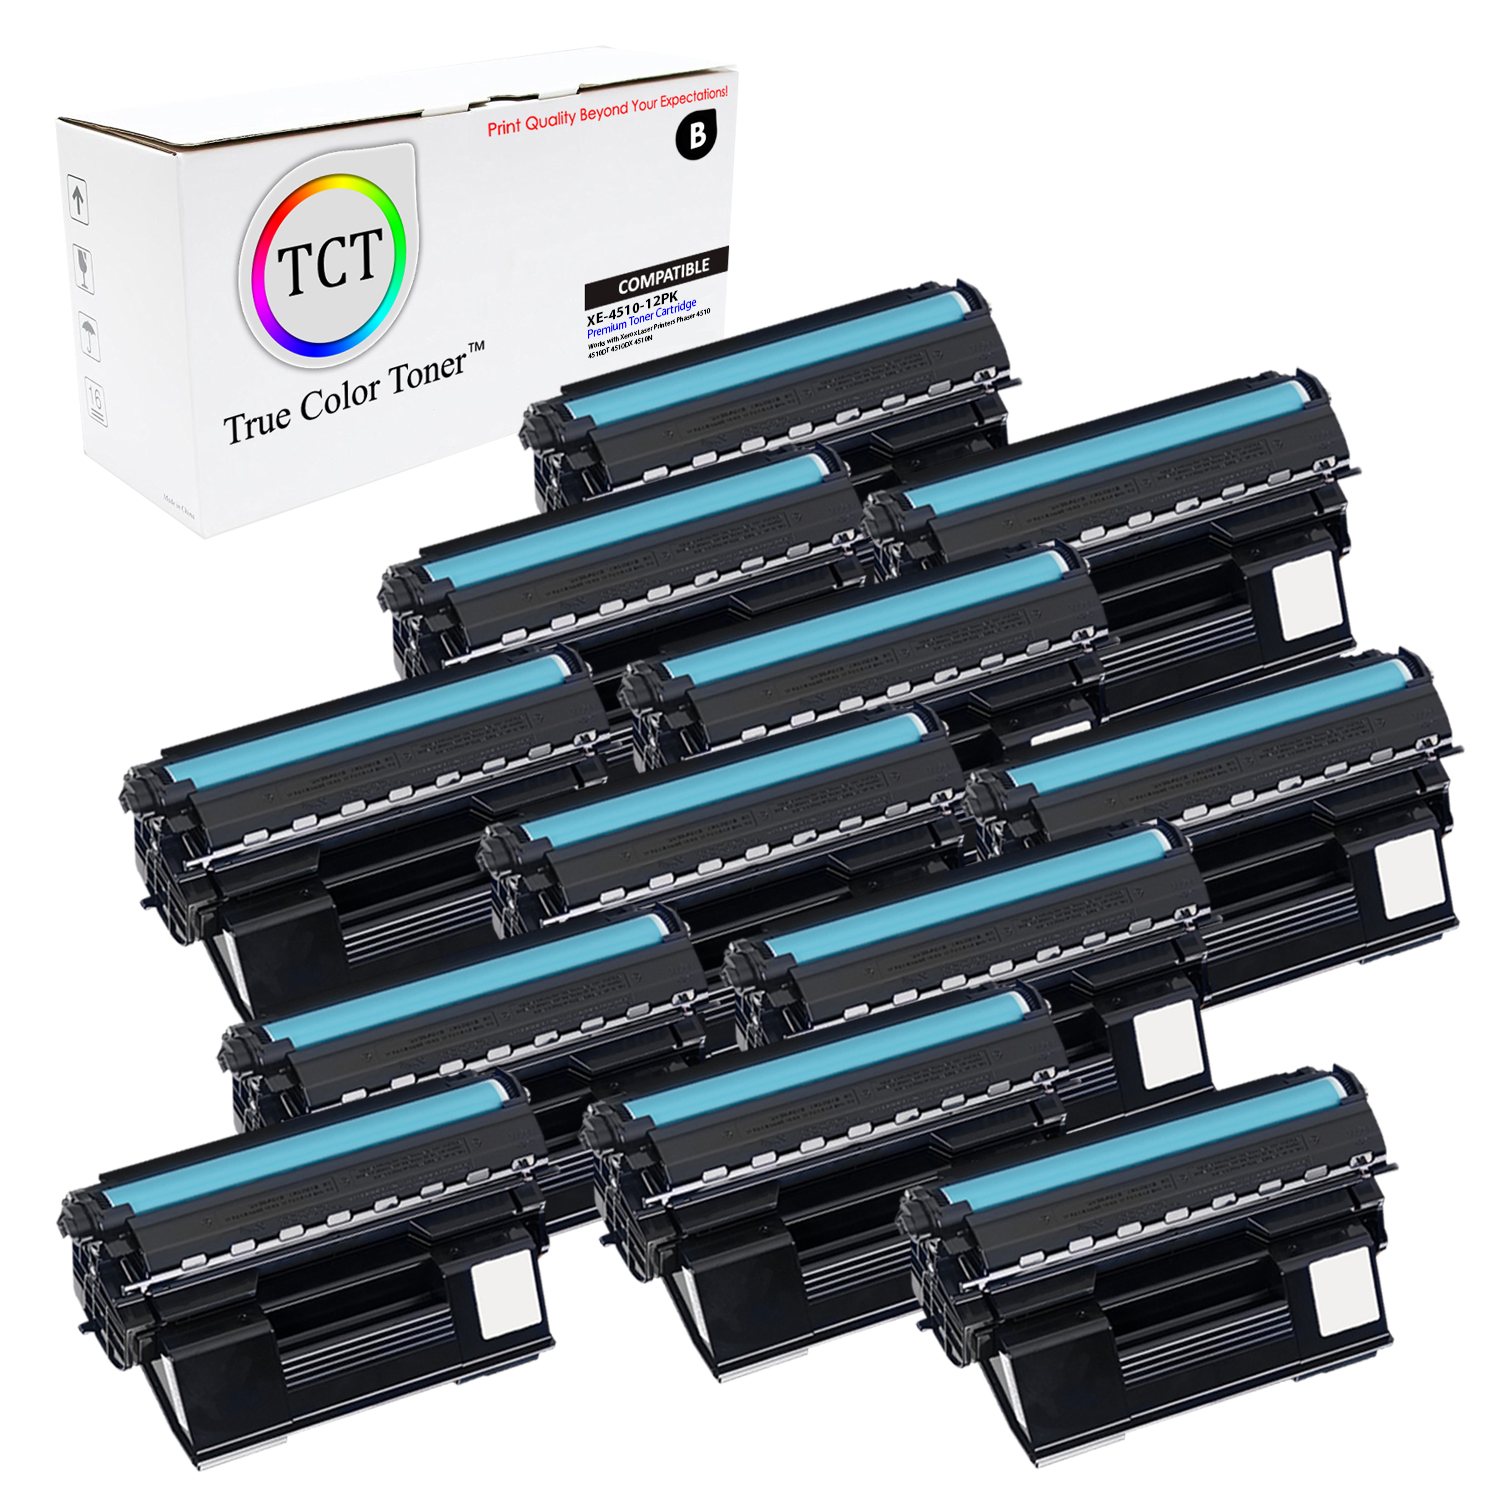 4PK Compatible Xerox 113R00712 HY Black Laser Toner Cartridge for Phaser 4510